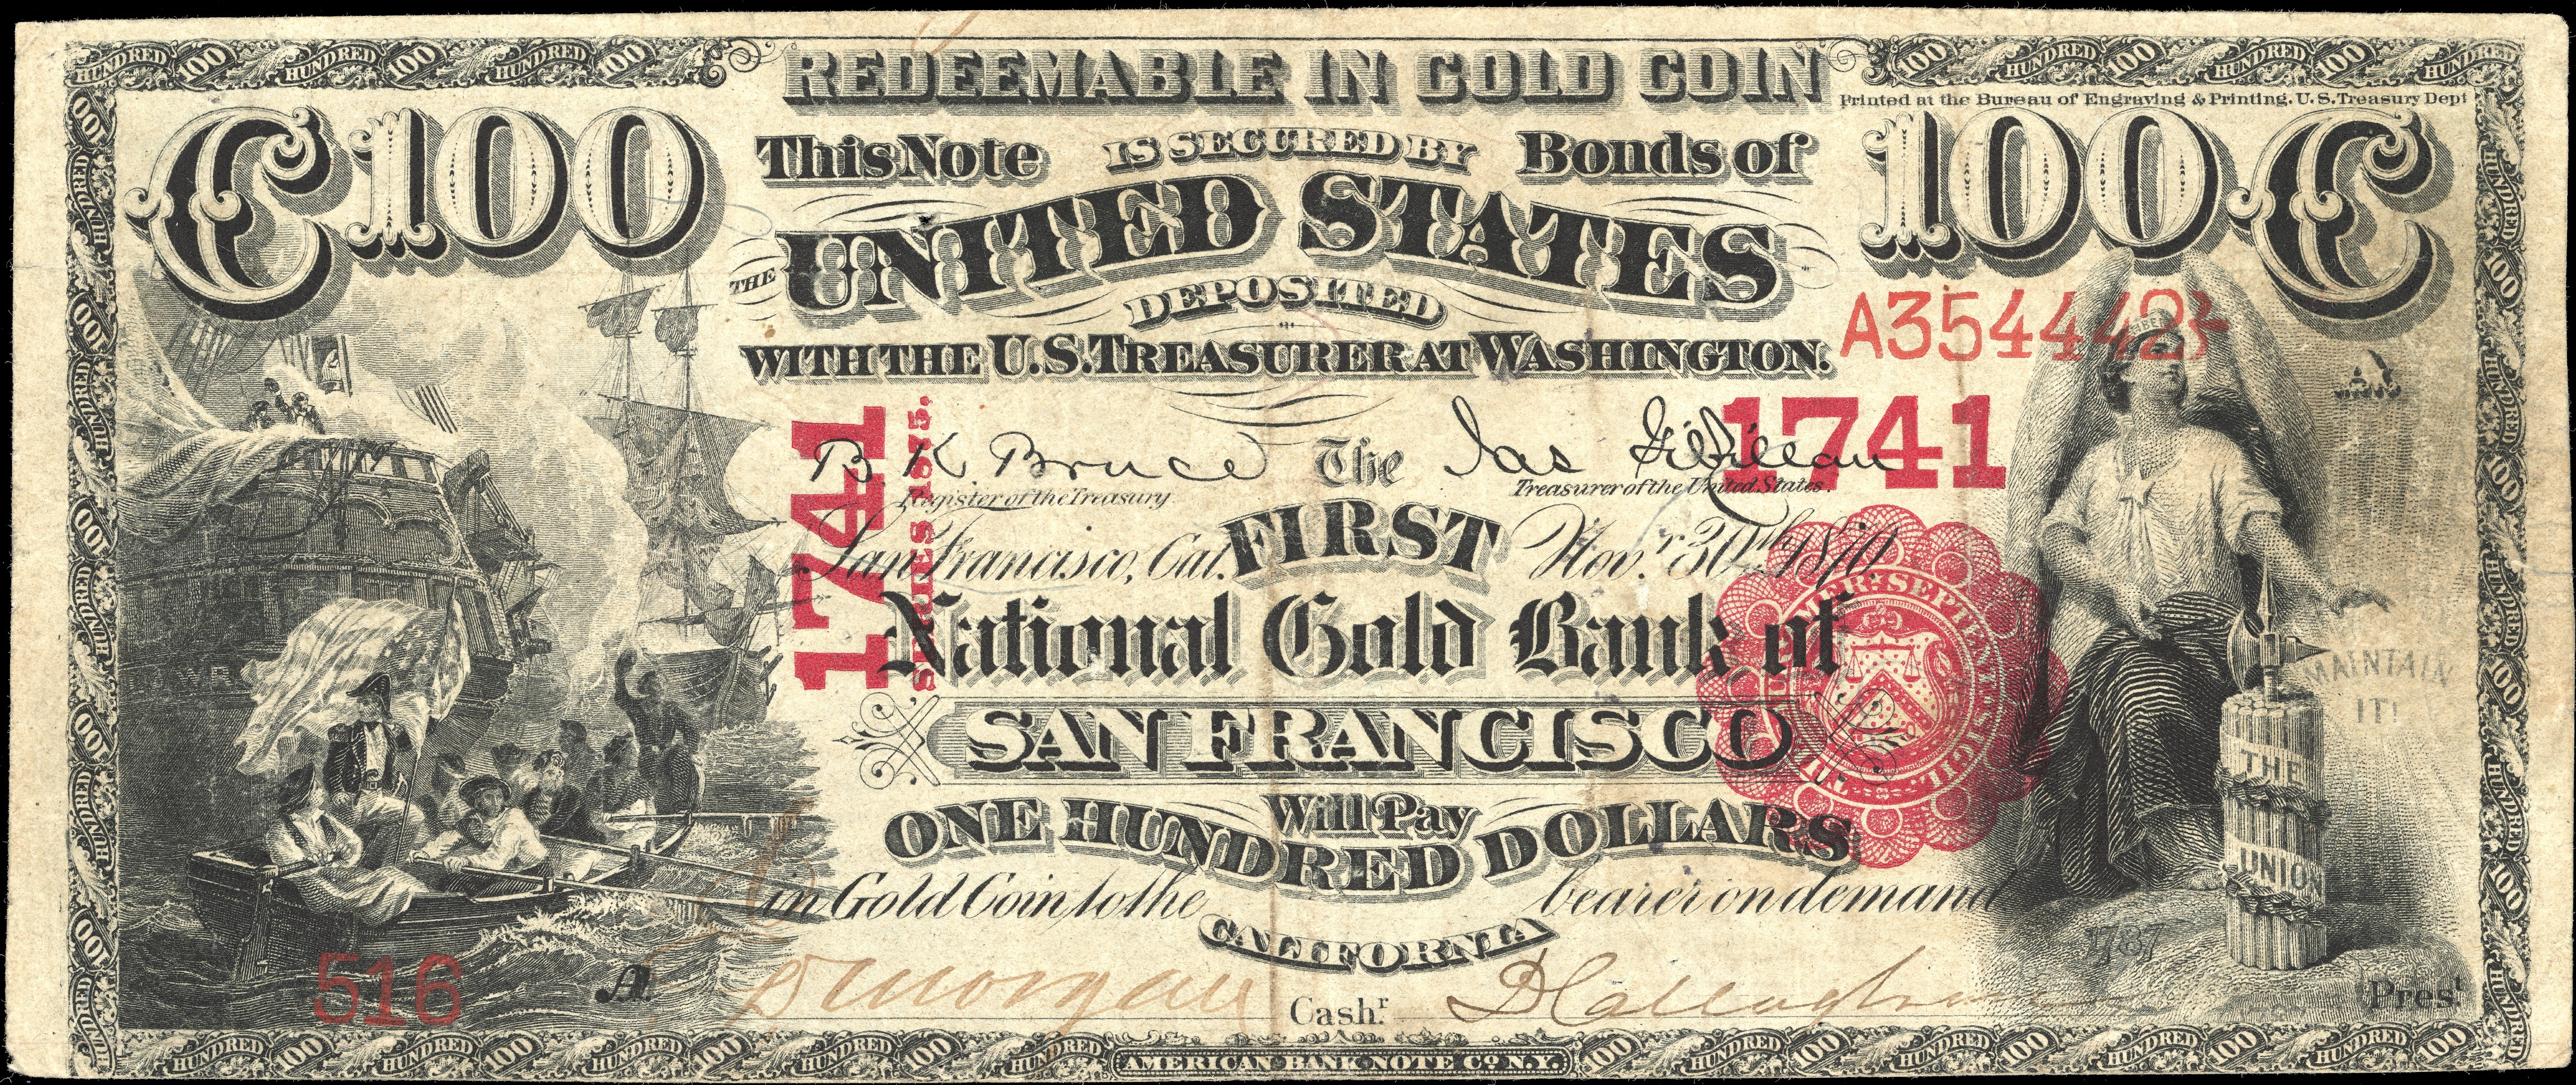 Banknote issued by the First National Gold Bank of San Francisco during the Gold Rush.